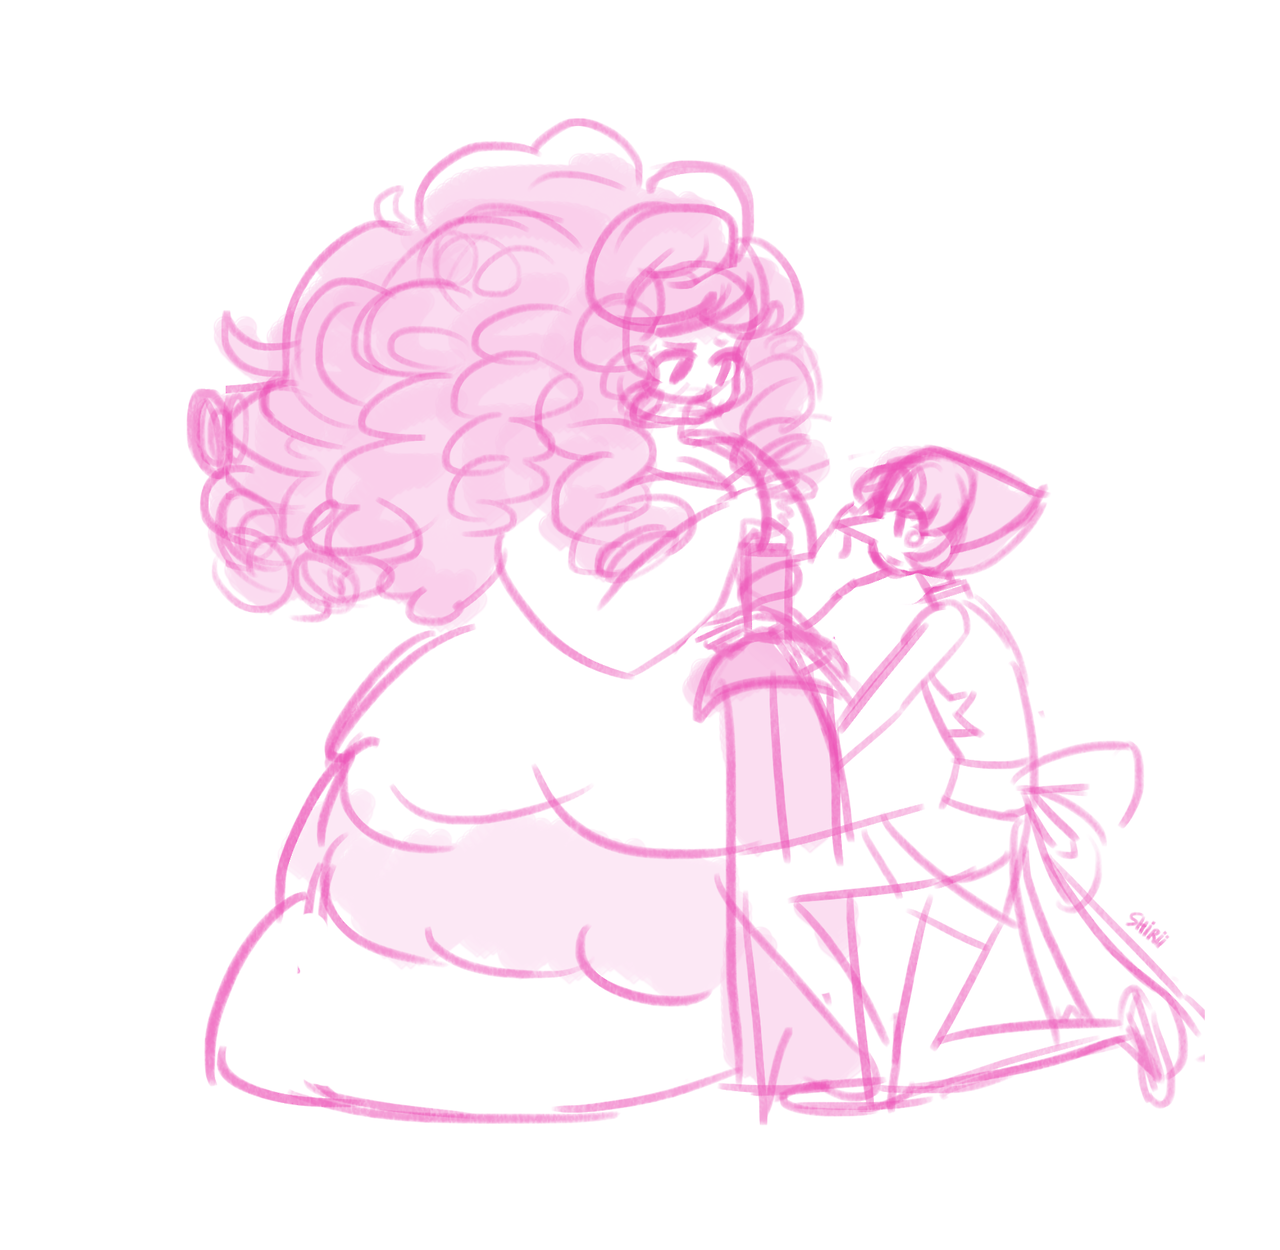 y'all ever wonder what pearl would do in rose's room and then make yourself cry bc same